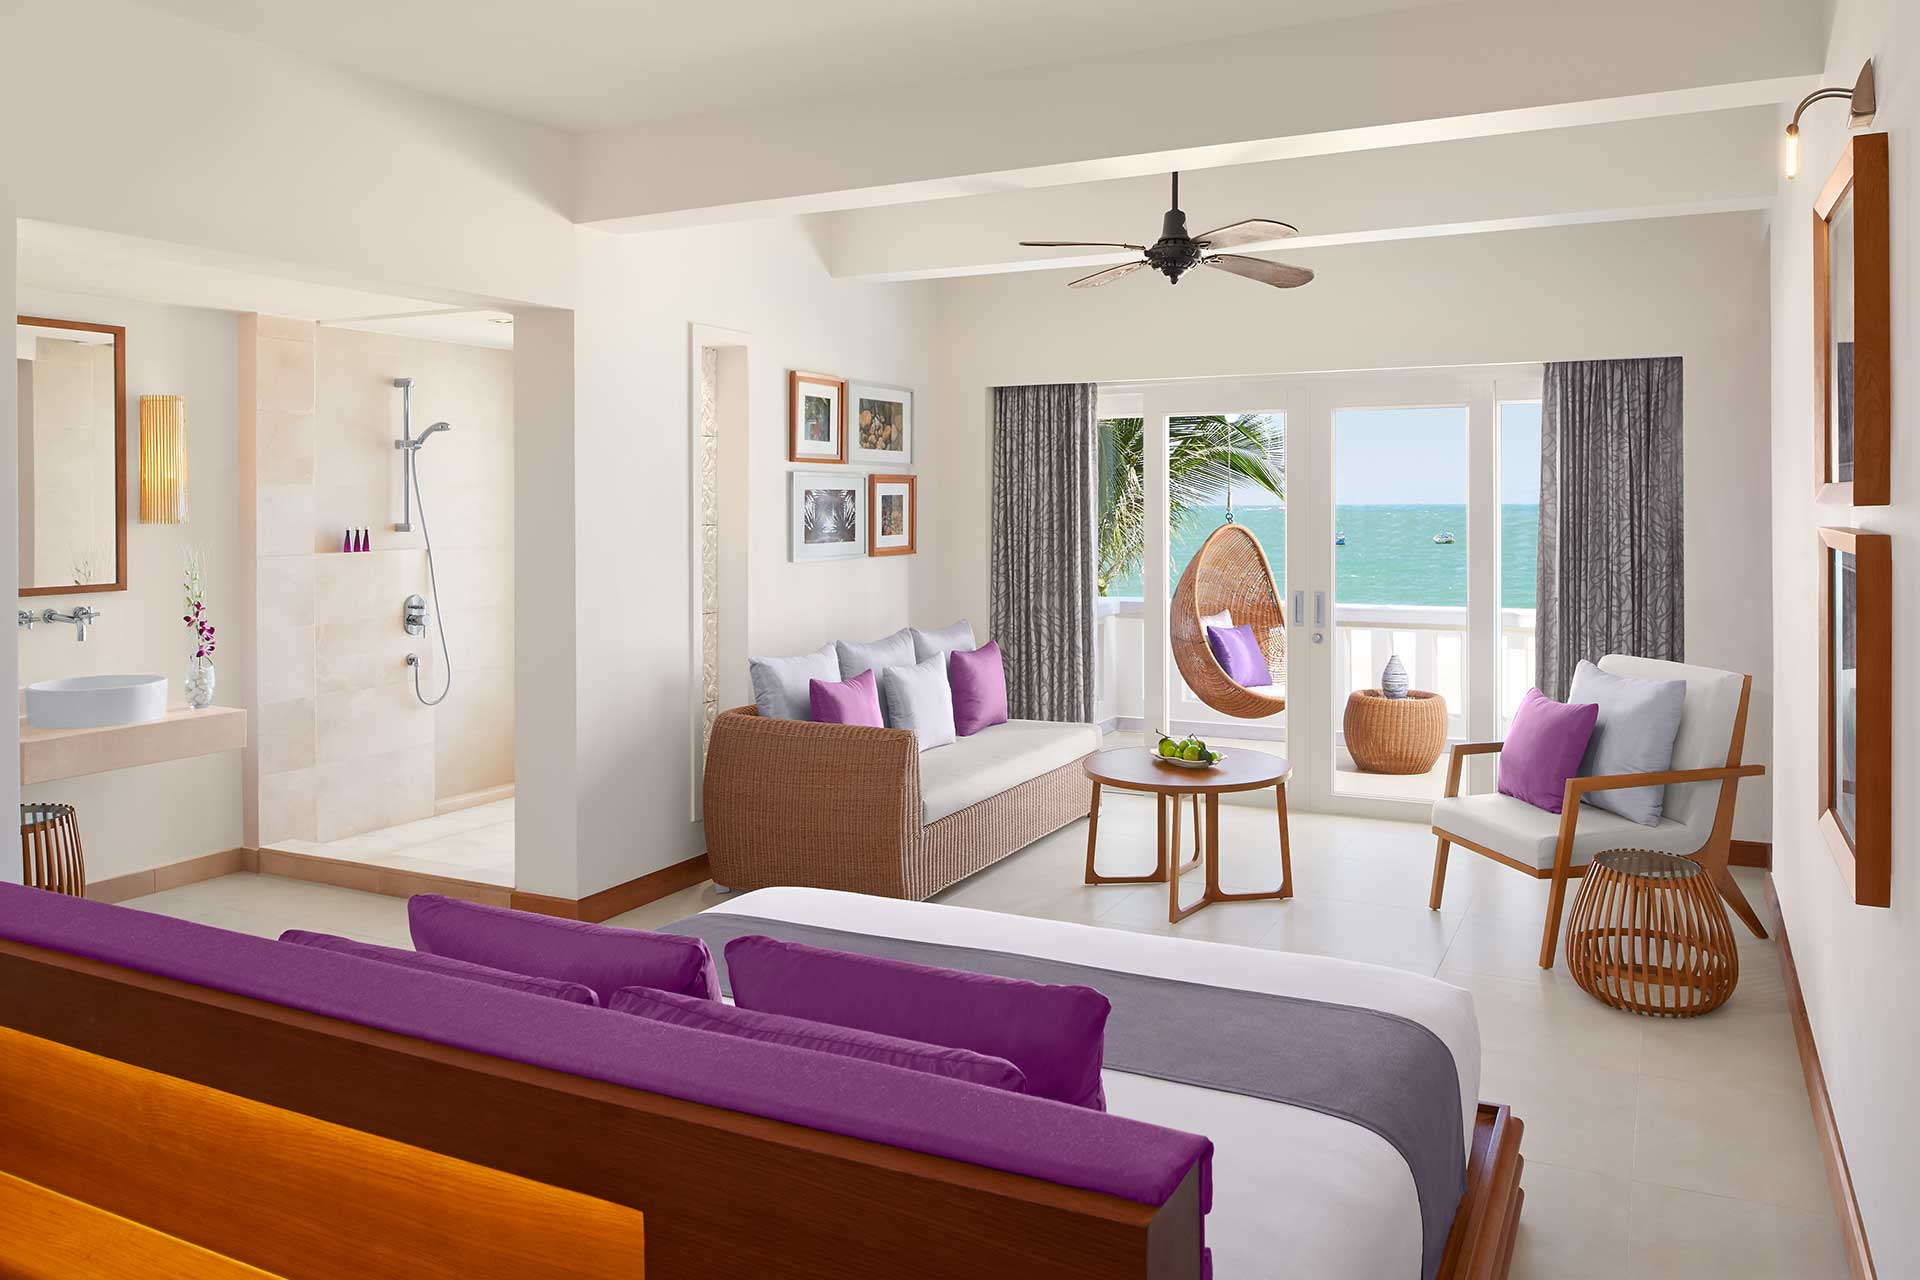 Interior of a junior ocean suite